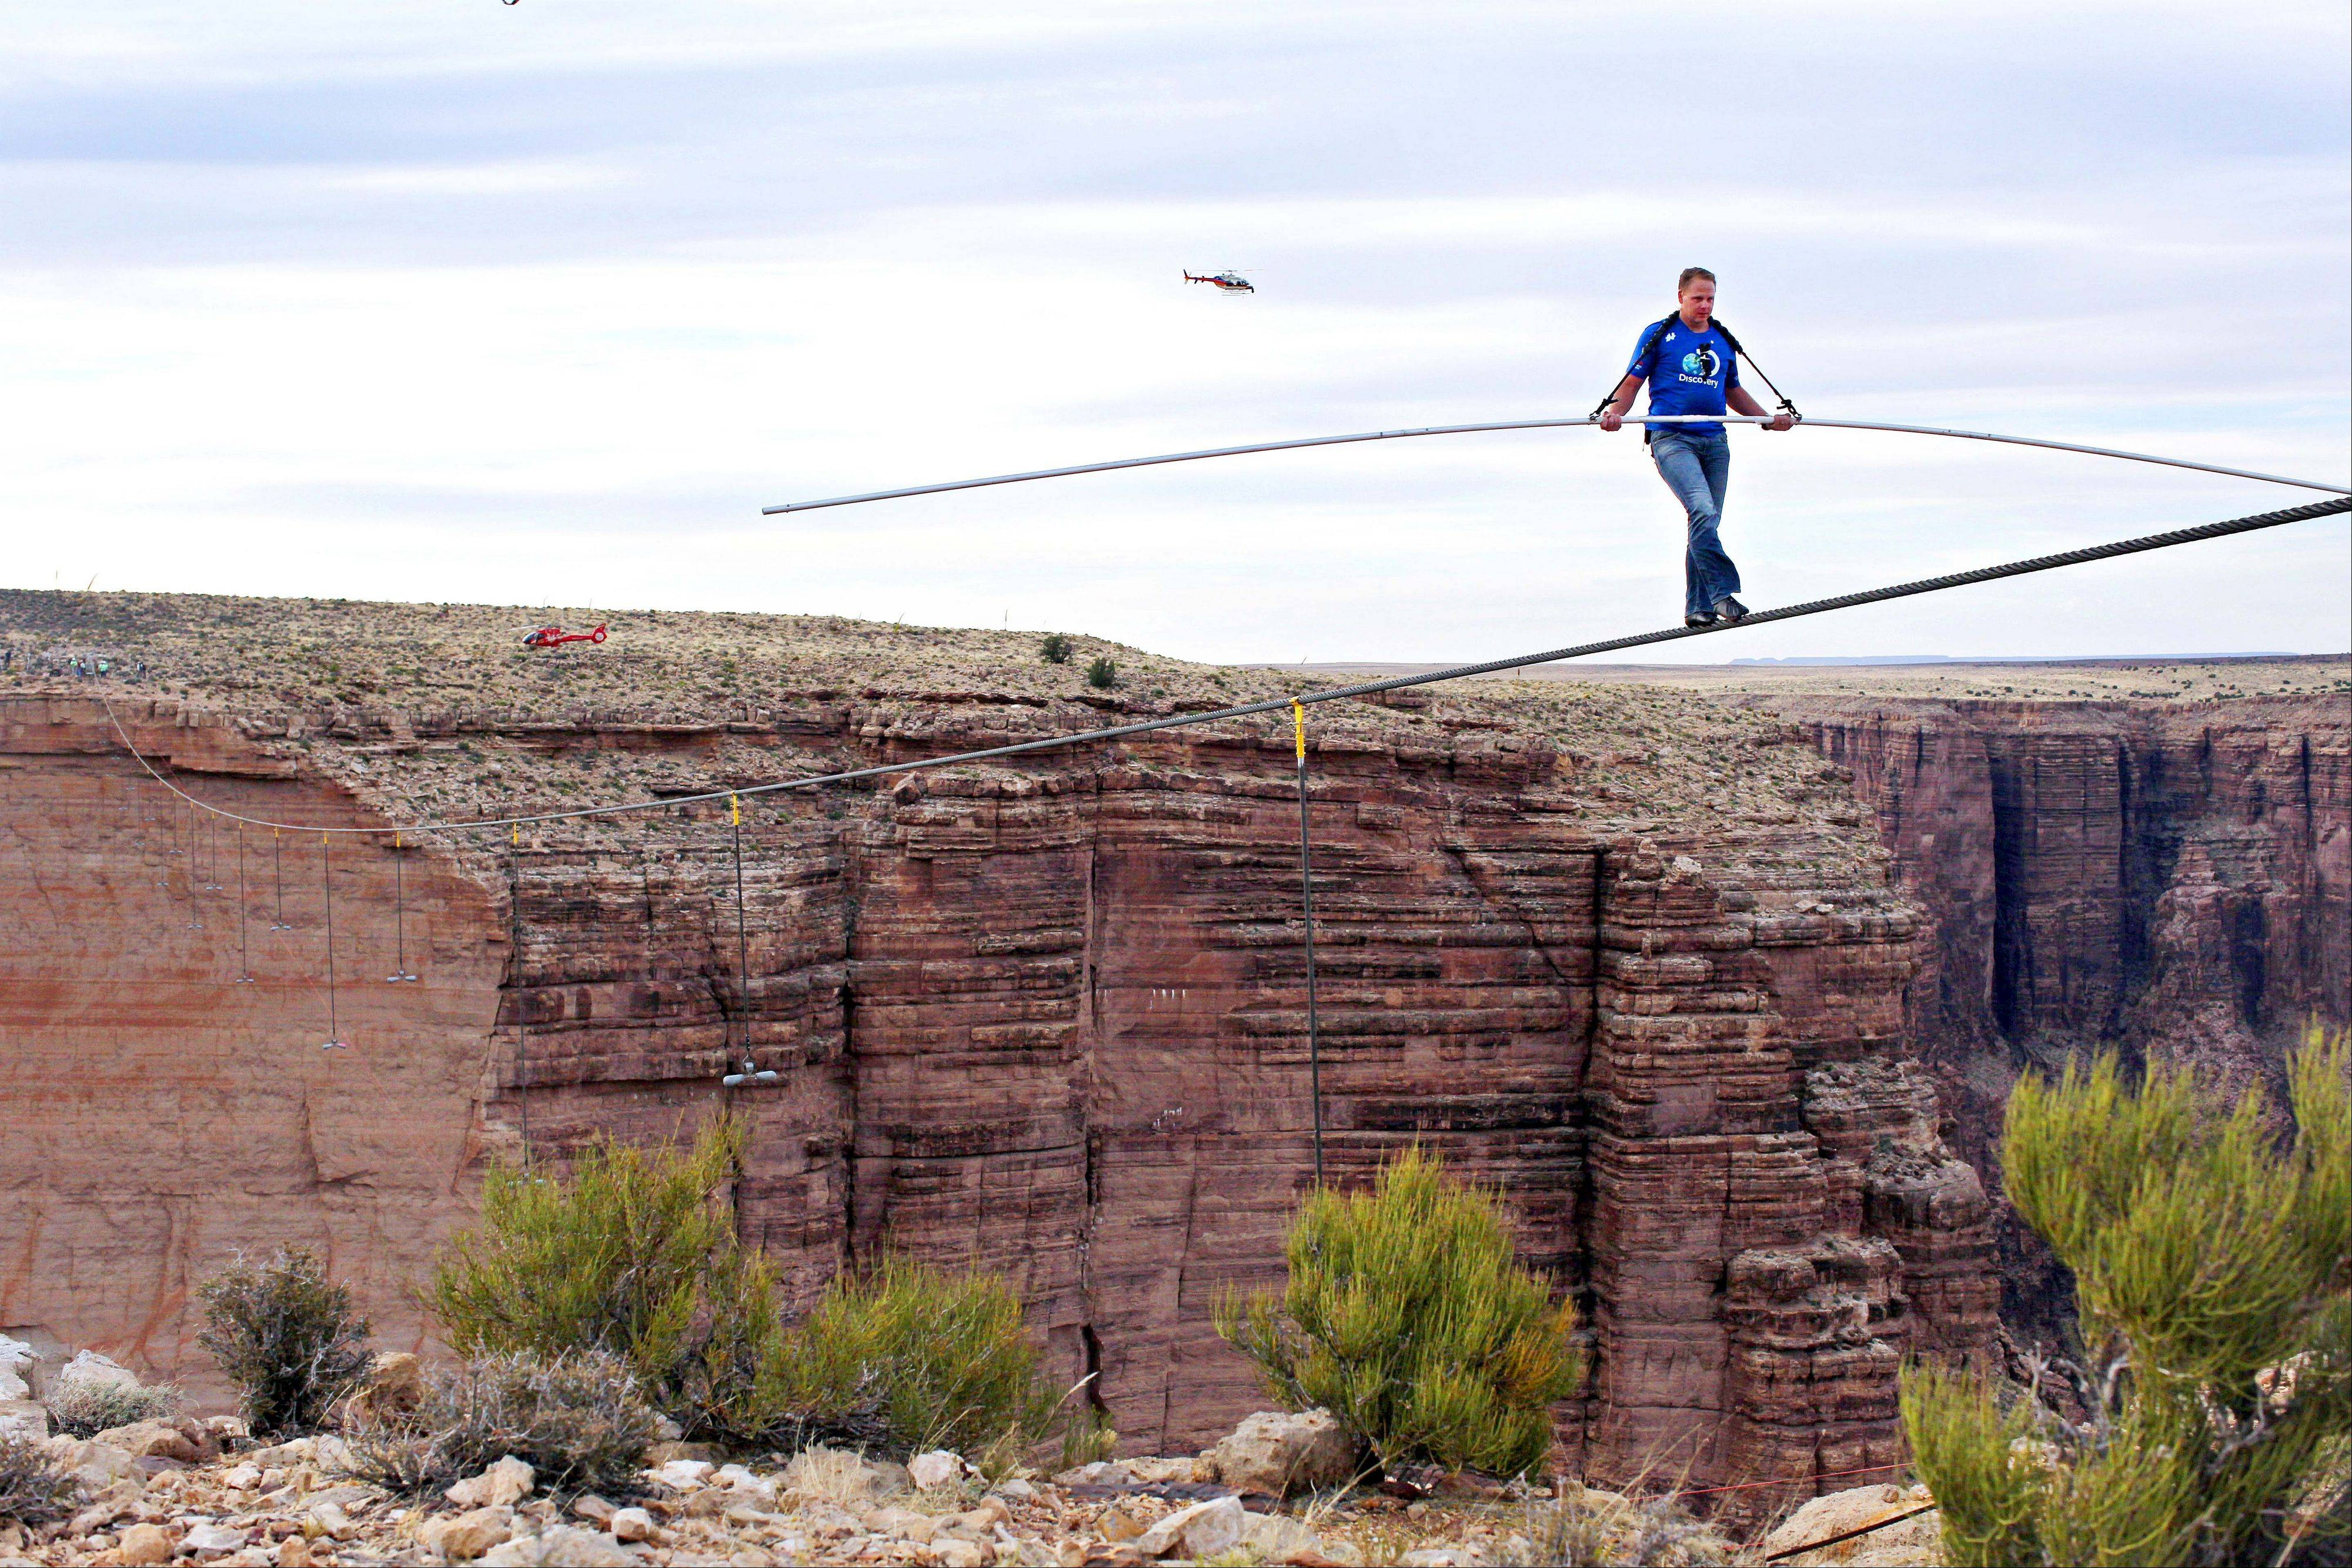 Aerialist Nik Wallenda near the end of his quarter mile walk over the Little Colorado River Gorge in northeastern Arizona on Sunday, June 23, 2013. The daredevil successfully traversed the tightrope strung 1,500 feet above the chasm near the Grand Canyon in just more than 22 minutes, pausing and crouching twice as winds whipped around him and the cable swayed.